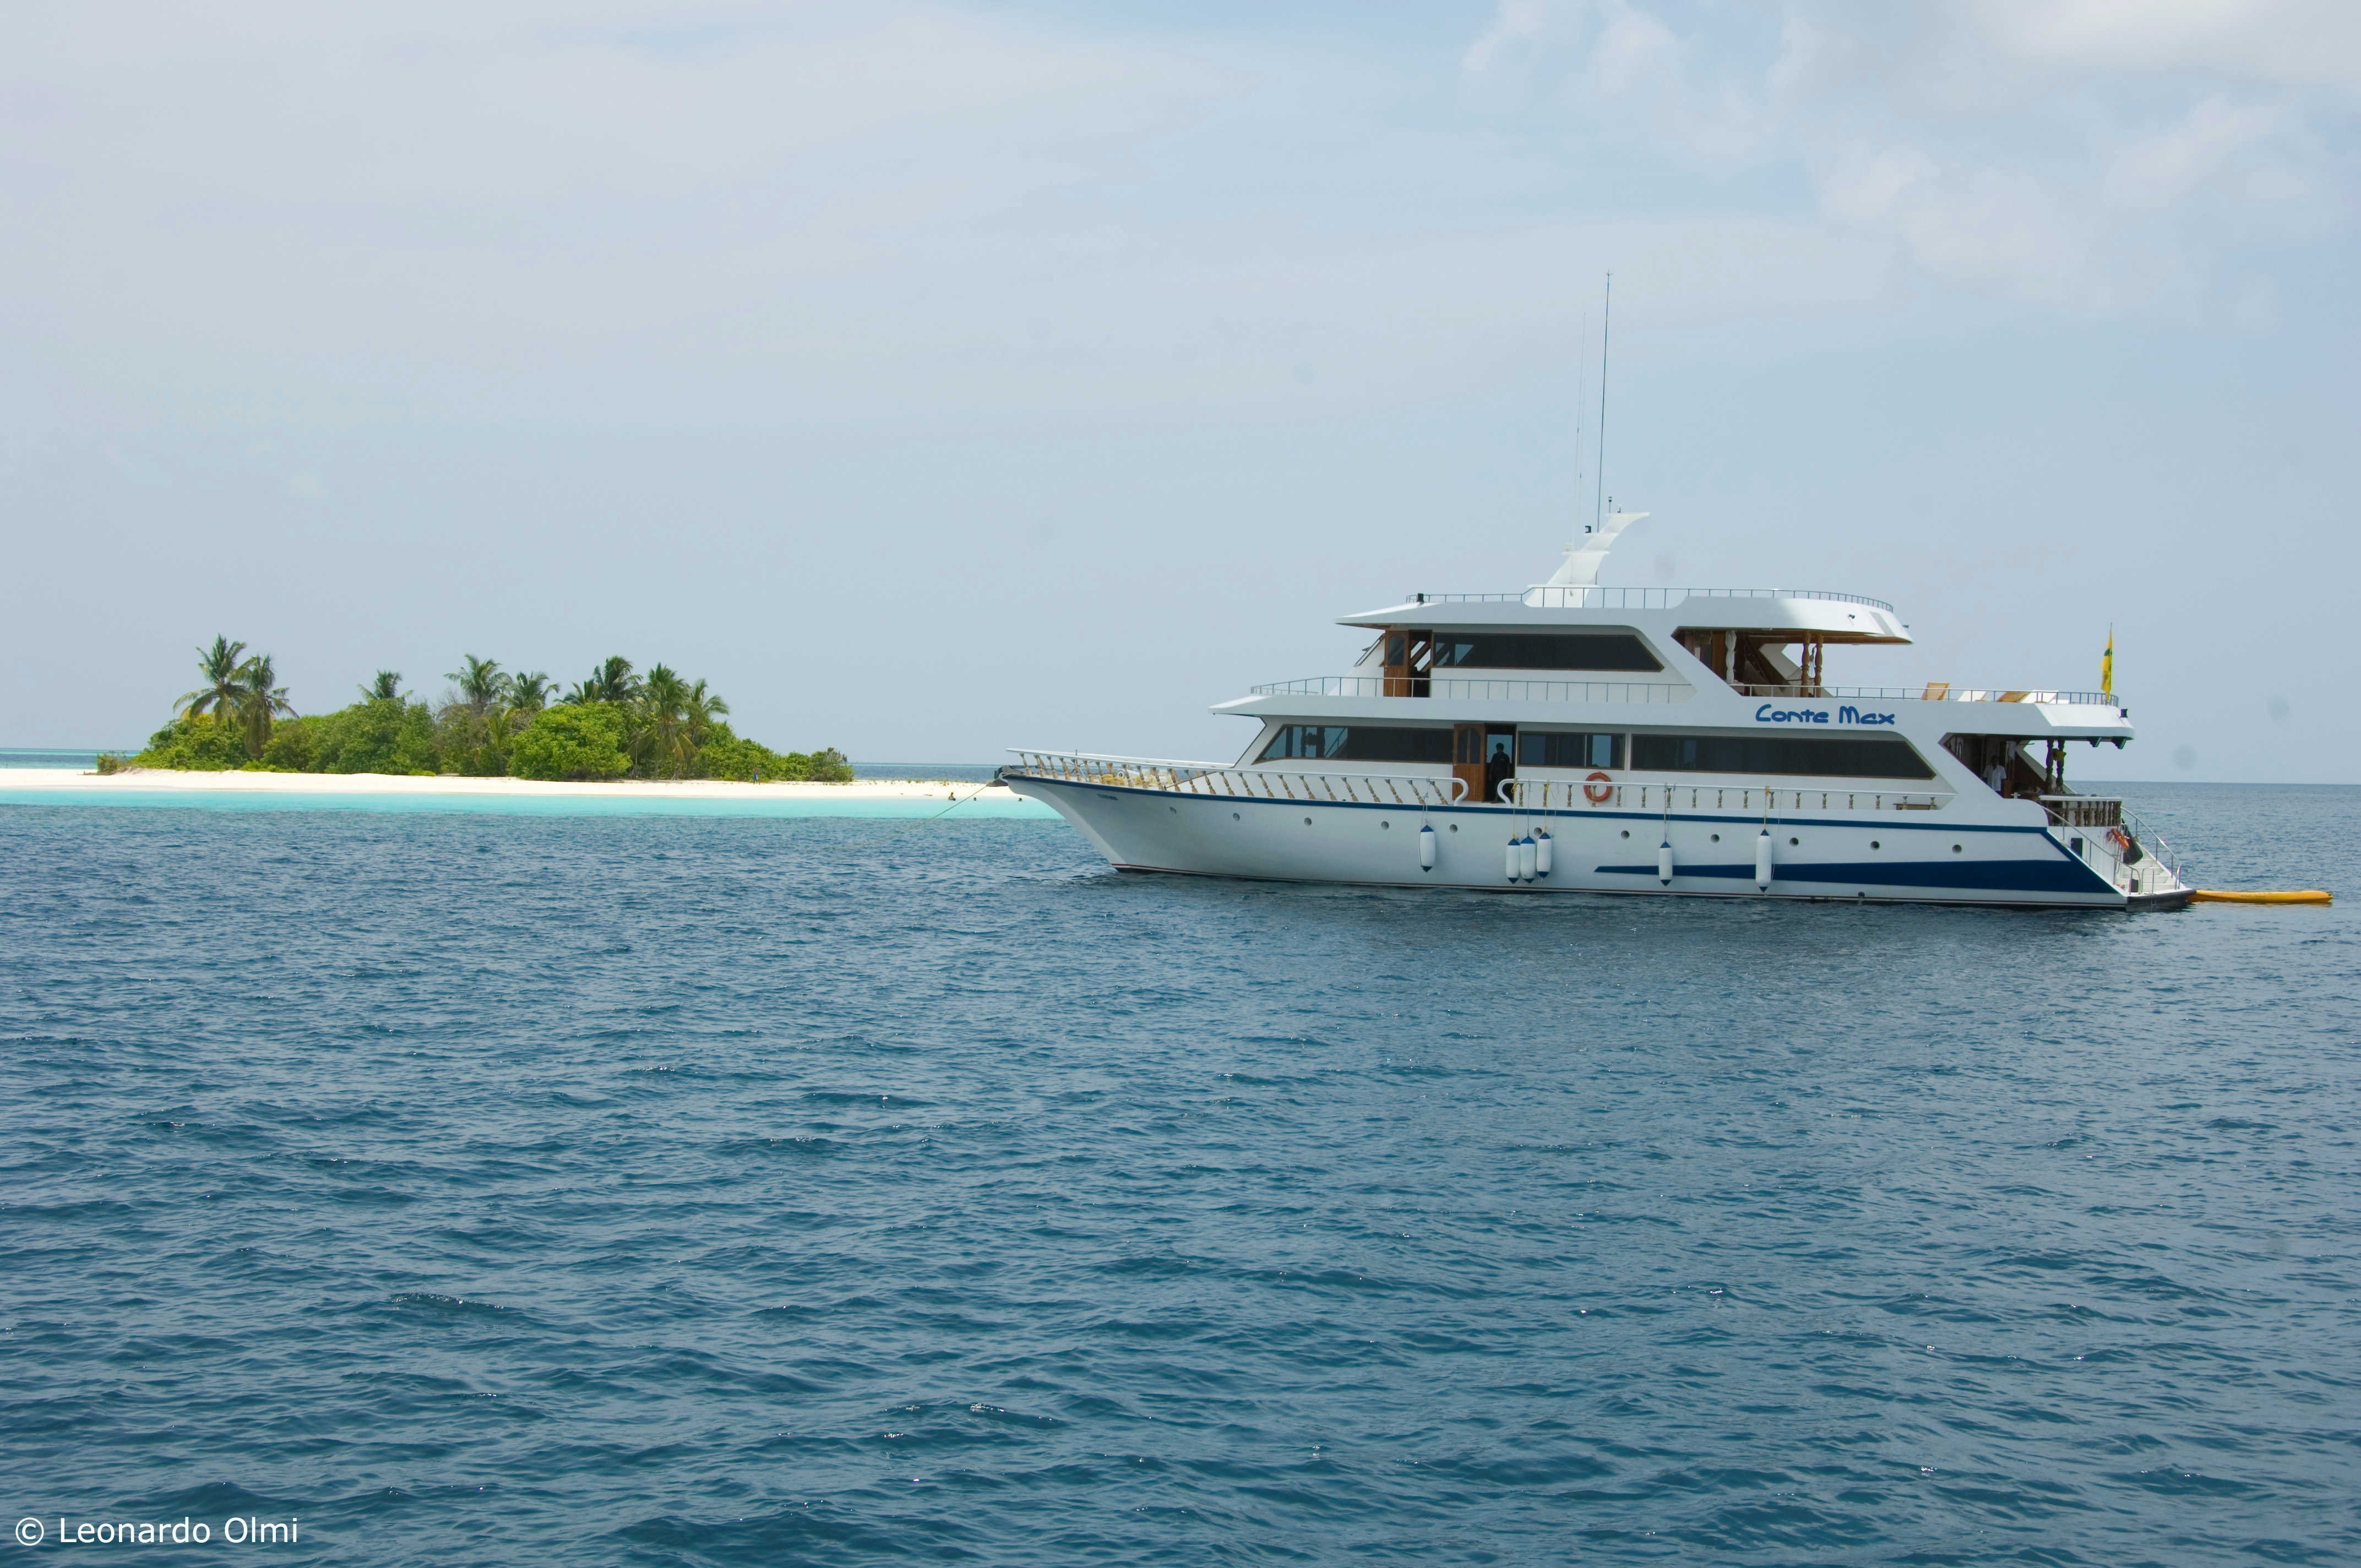 Maldives diving cruise - low - 15